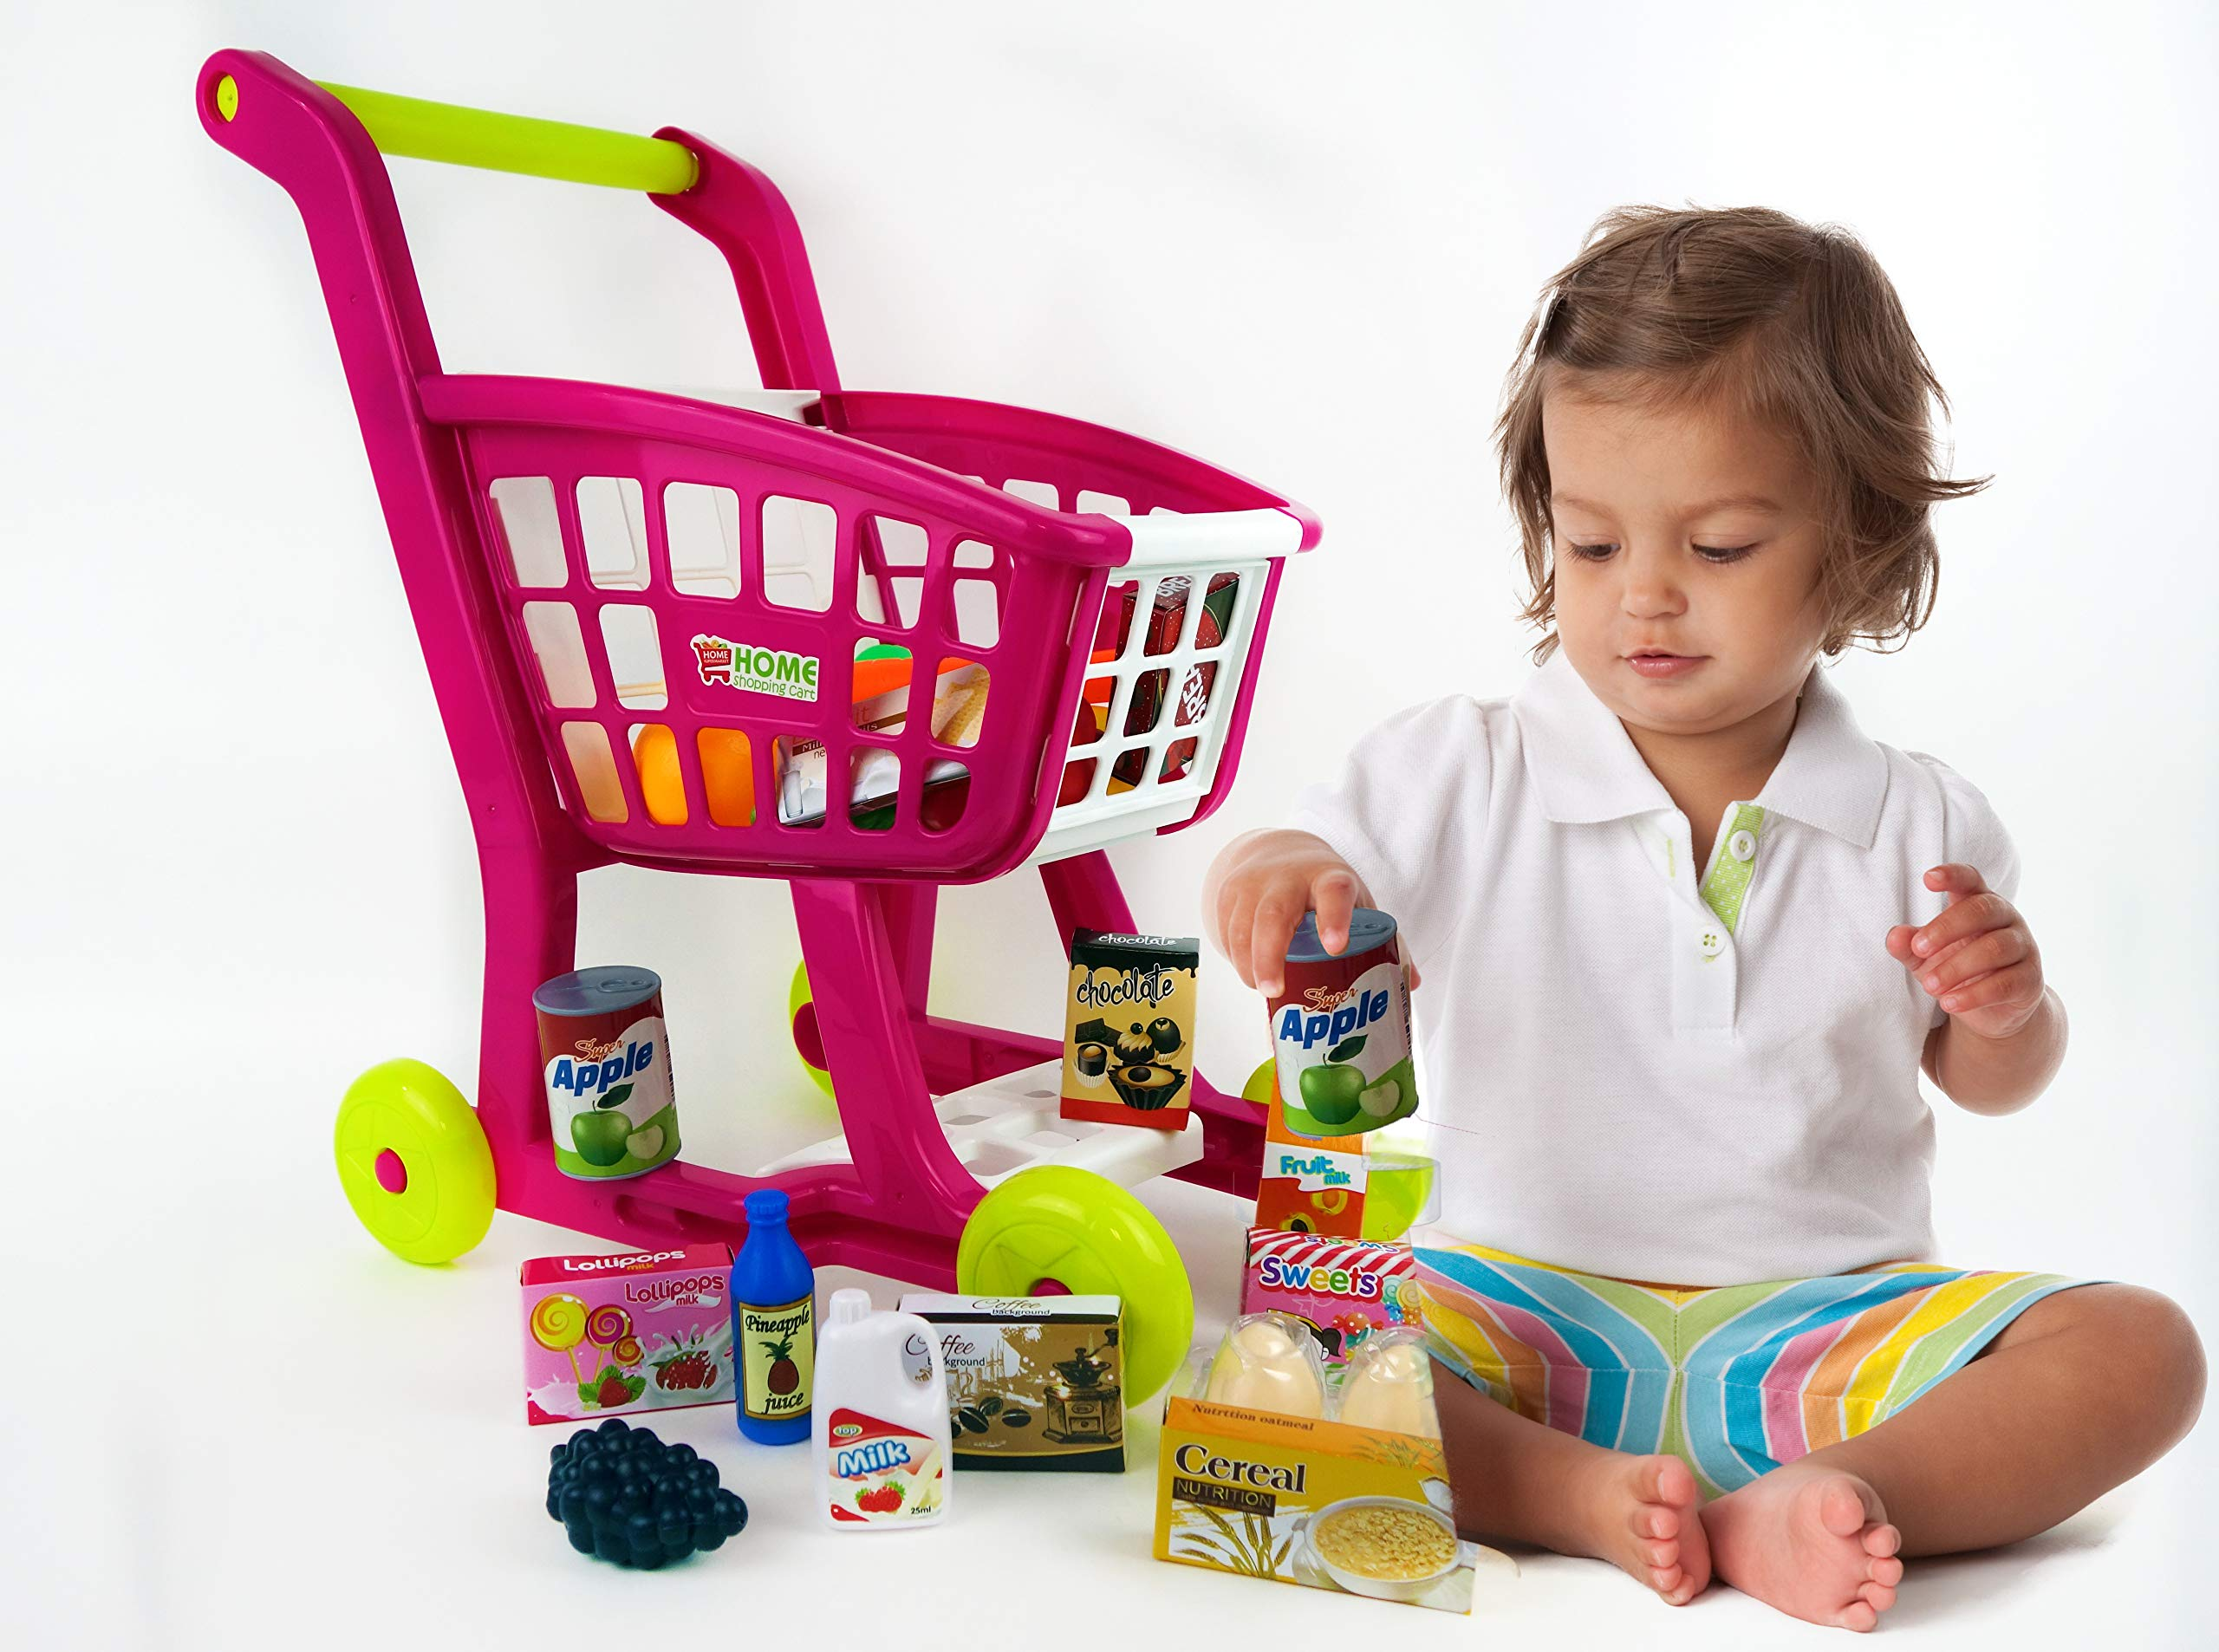 NBD Corp Kids Shopping Cart for Toy Groceries, Pink Portable Cart with 27 Pieces of Fruits, Vegetables, Food, Pretend Play Toy Grocery Cart